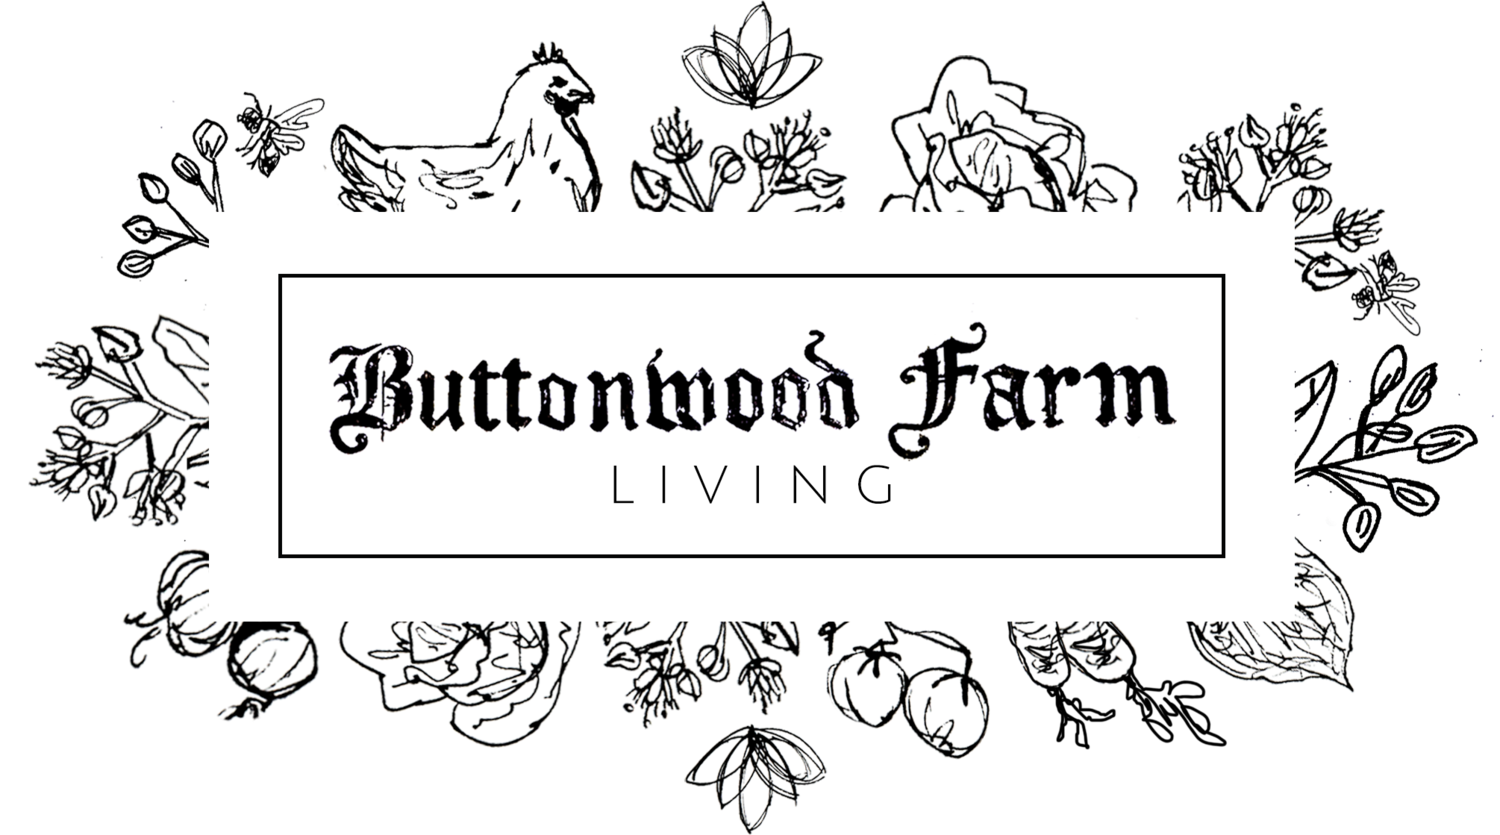 Buttonwood Farm Living